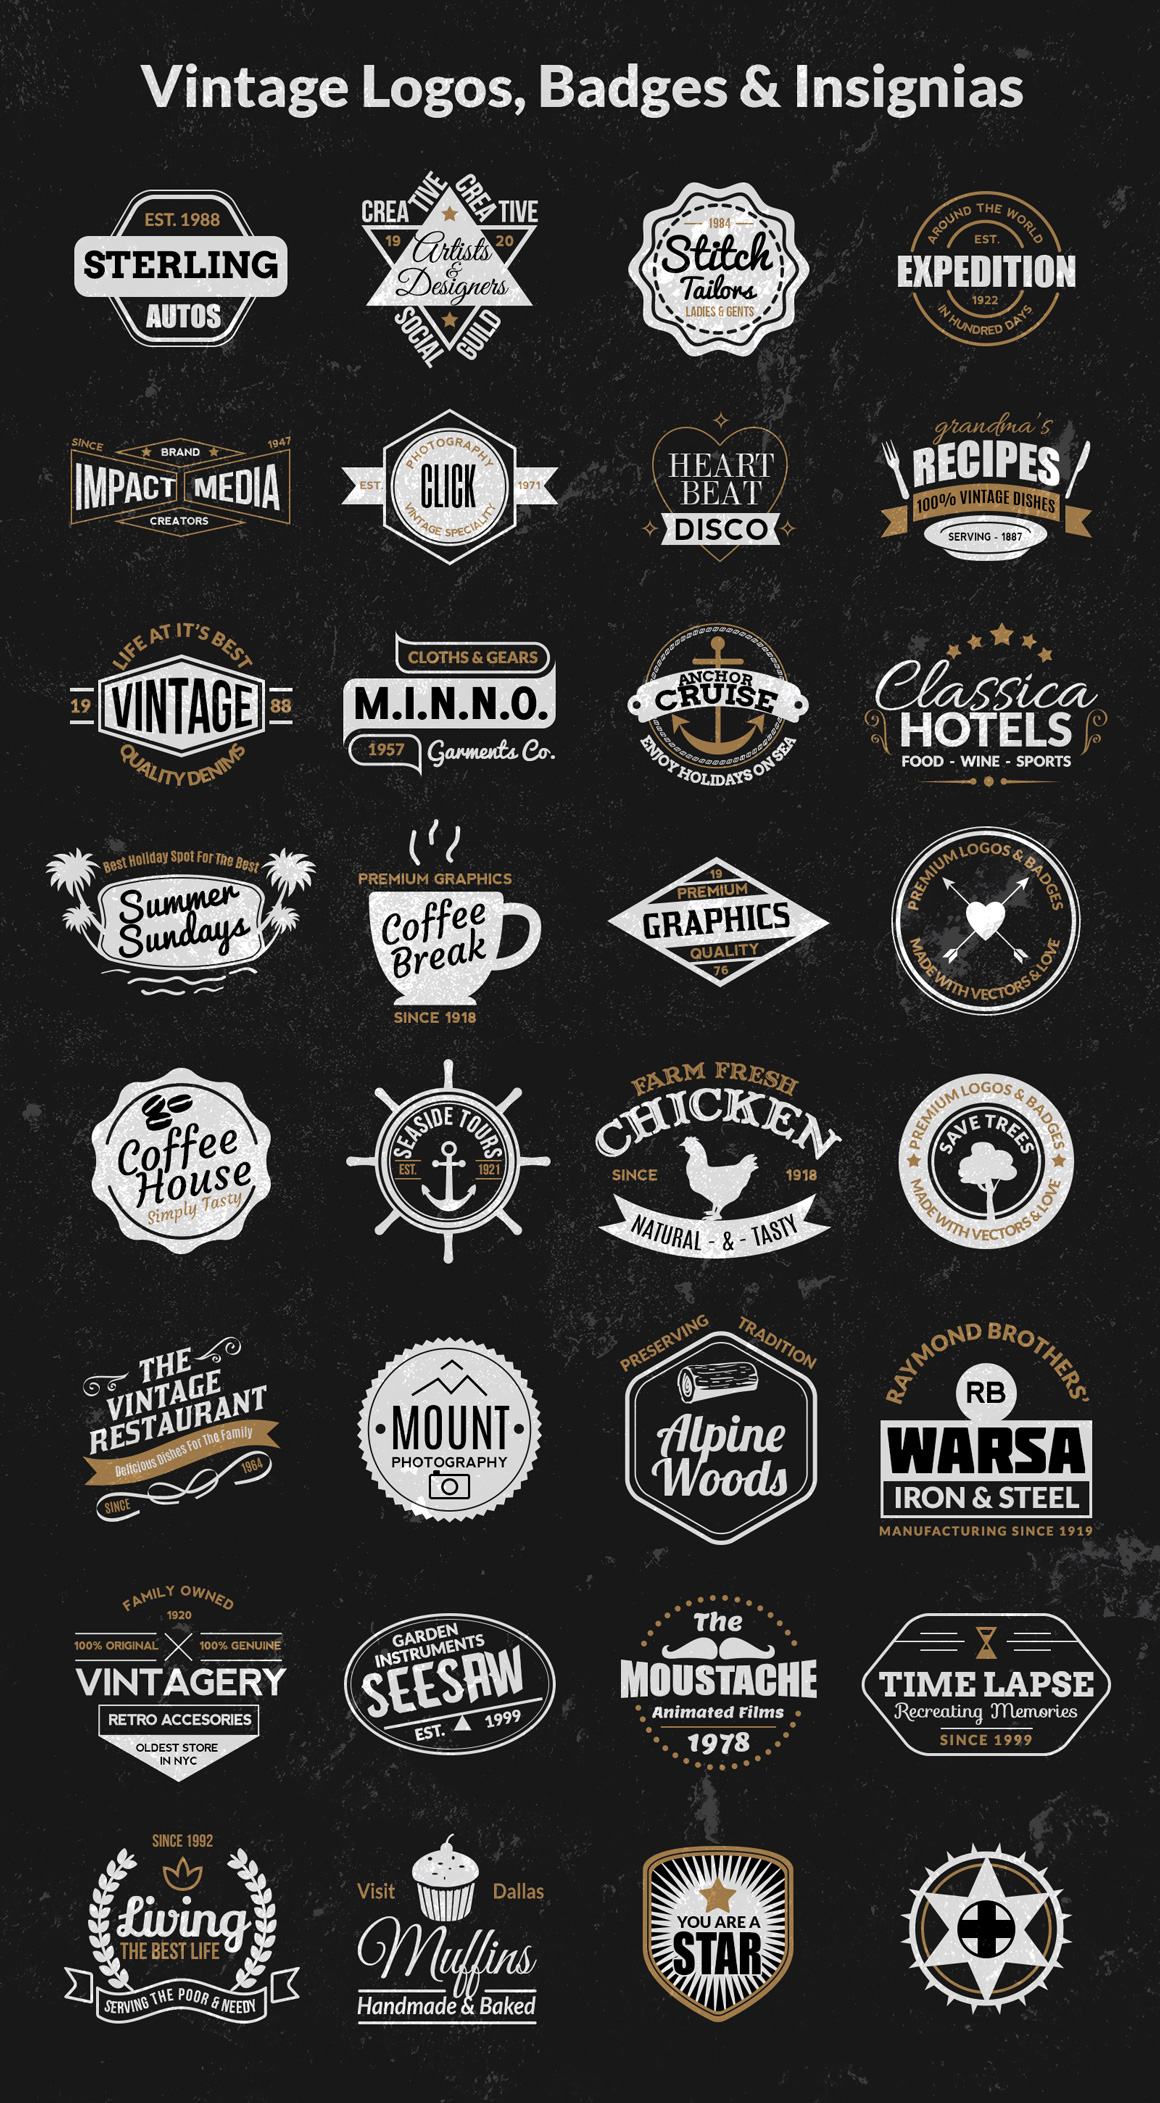 bonus-logos-badges-insignias-colored